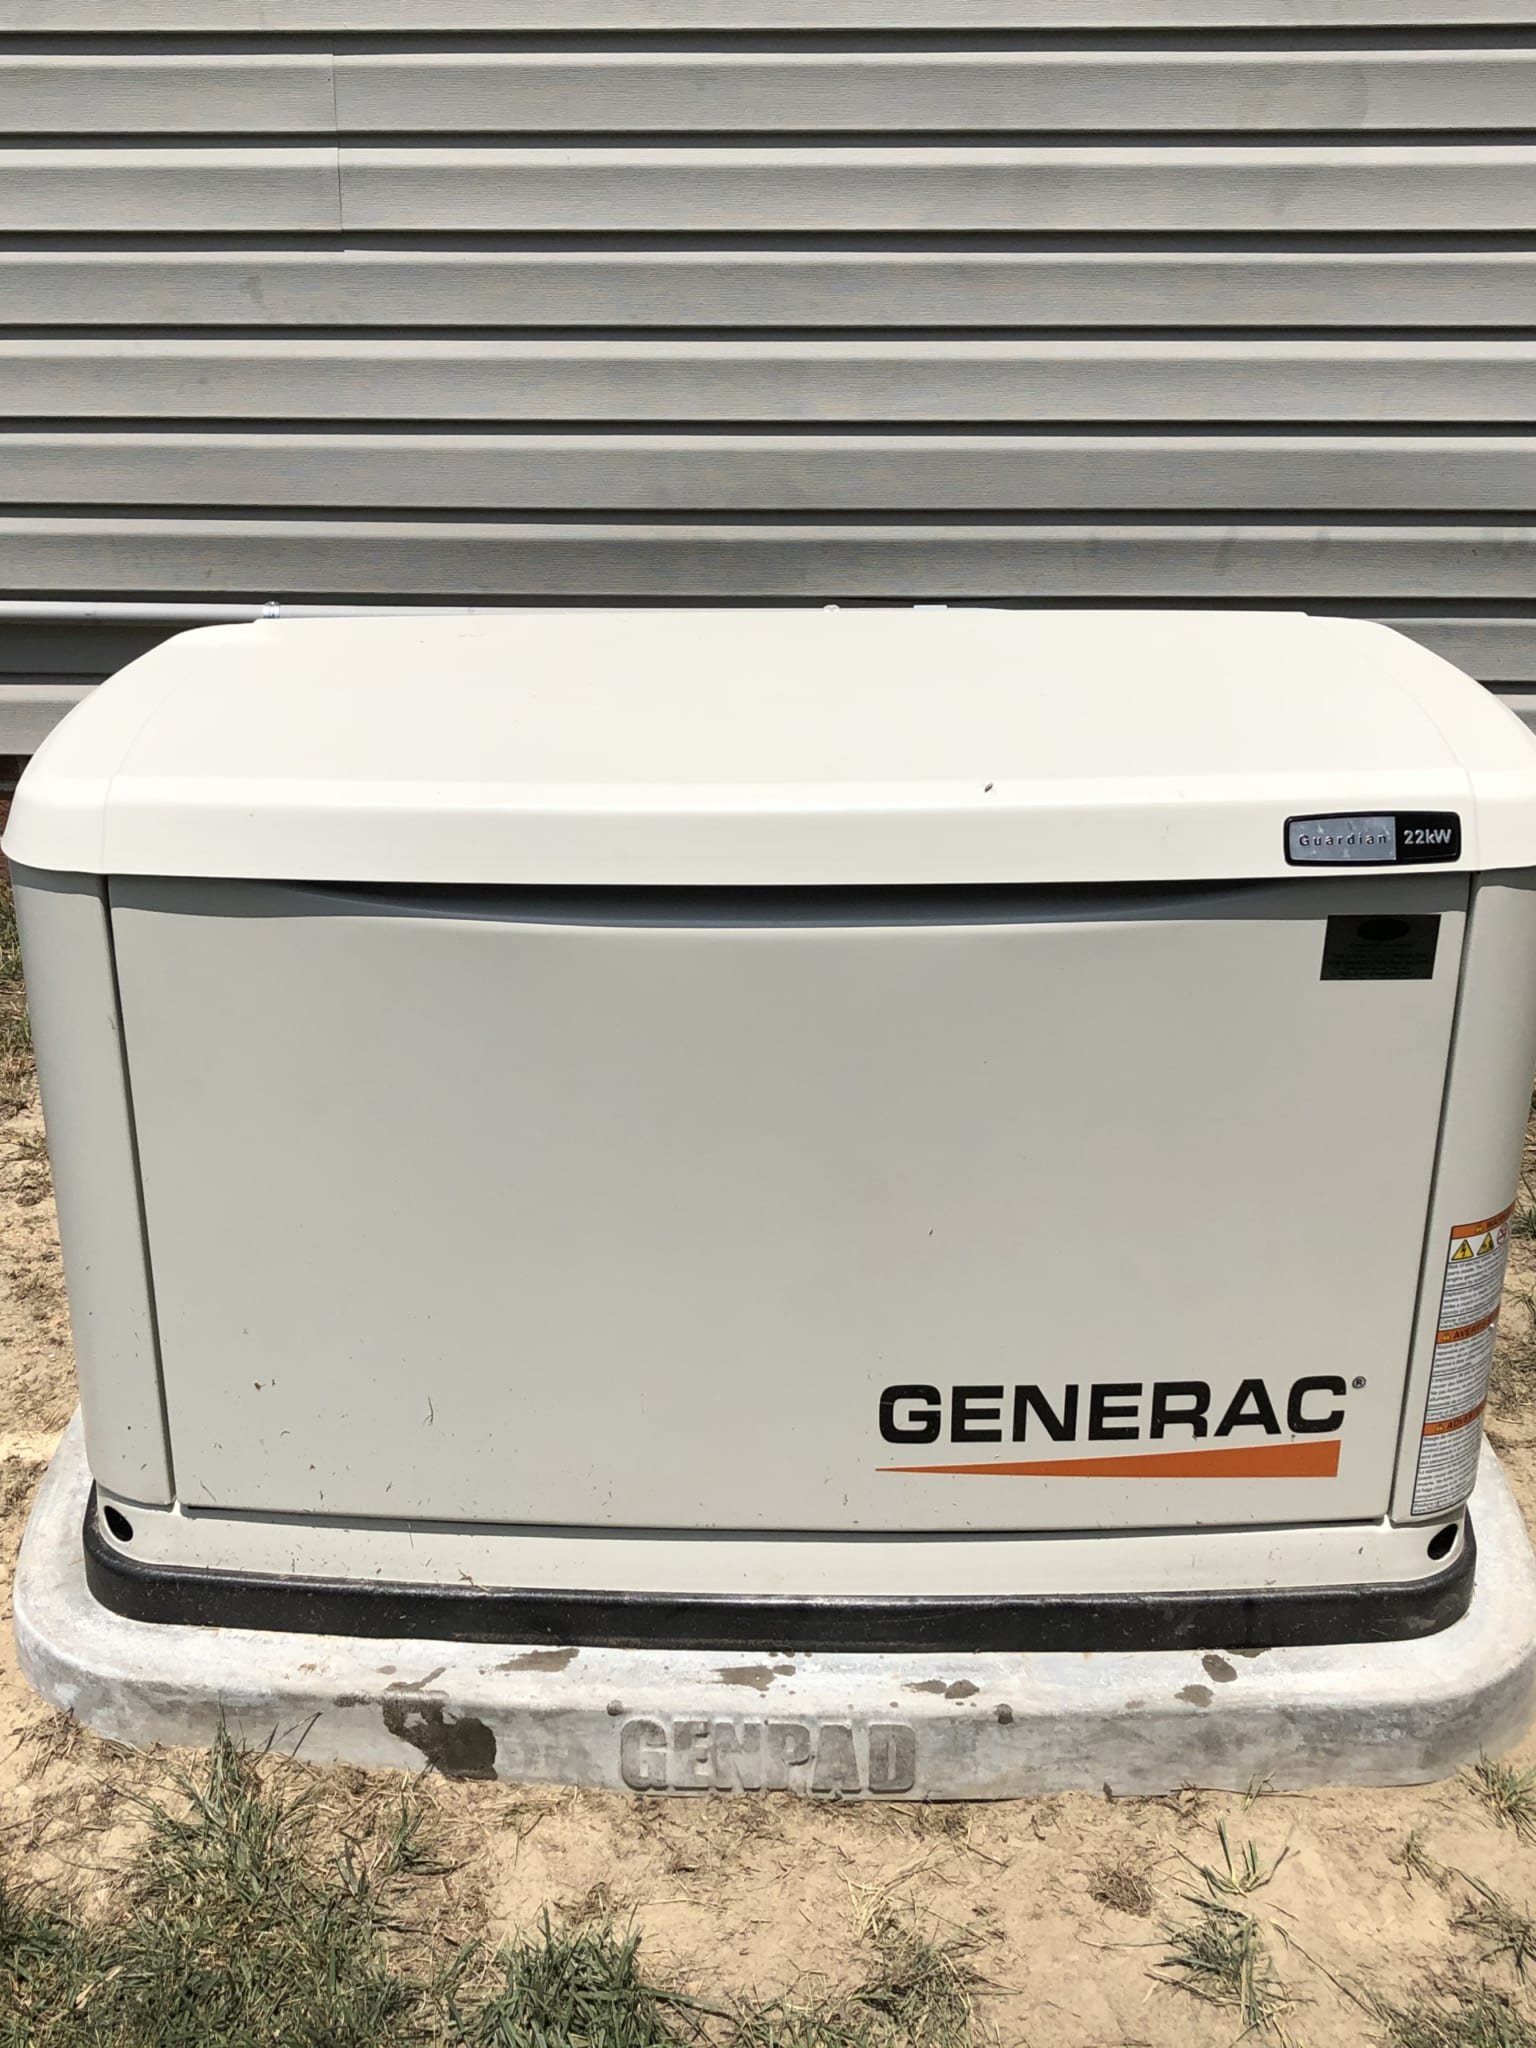 7.6.20 Chesterfield Generac Automatic Standby Generator